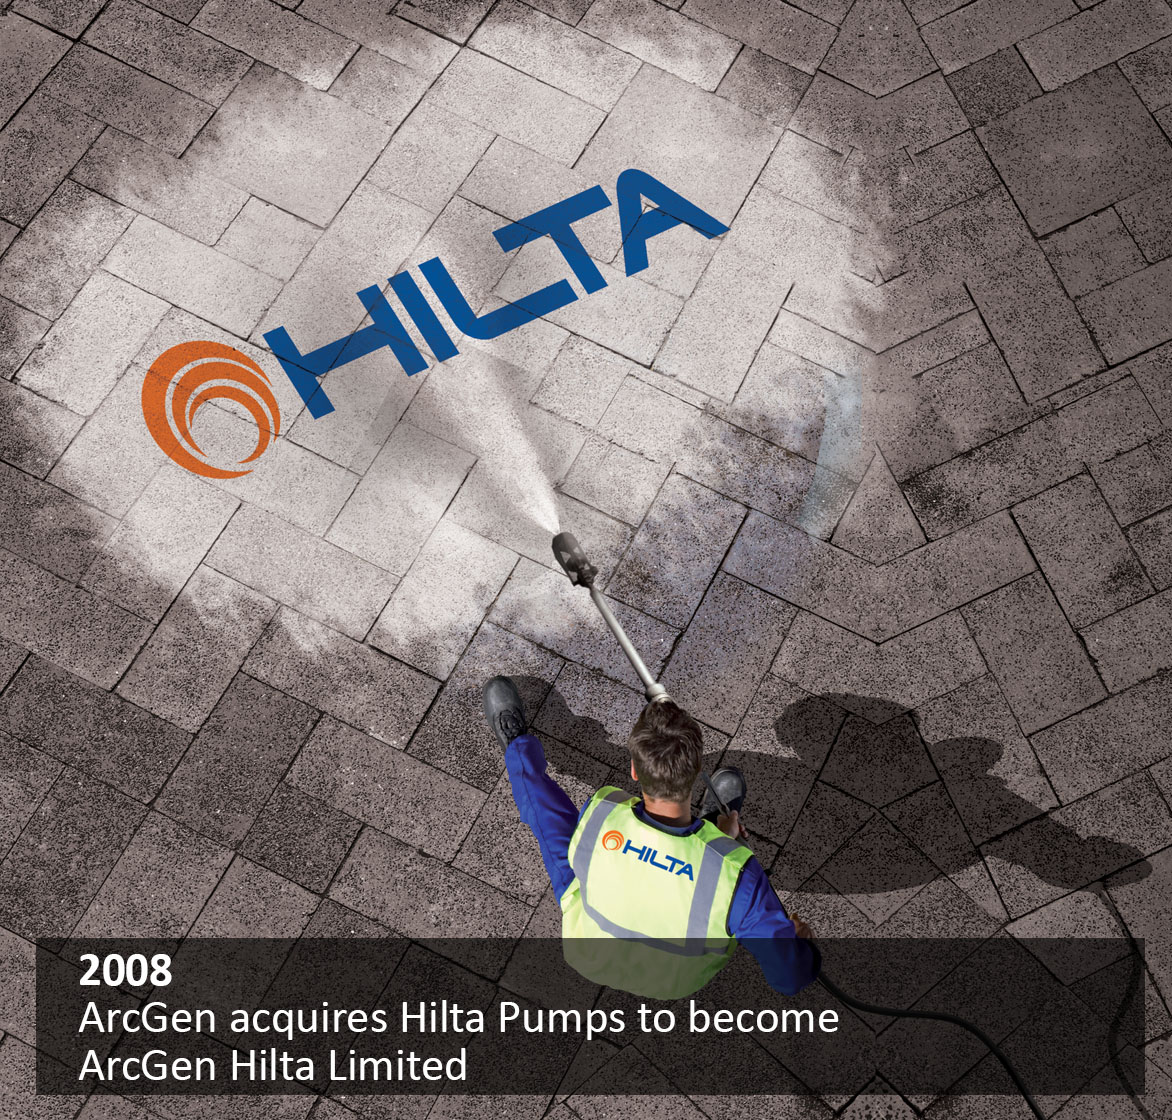 ArcGen acquires Hilta Pumps to become ArcGen Hilta Limited